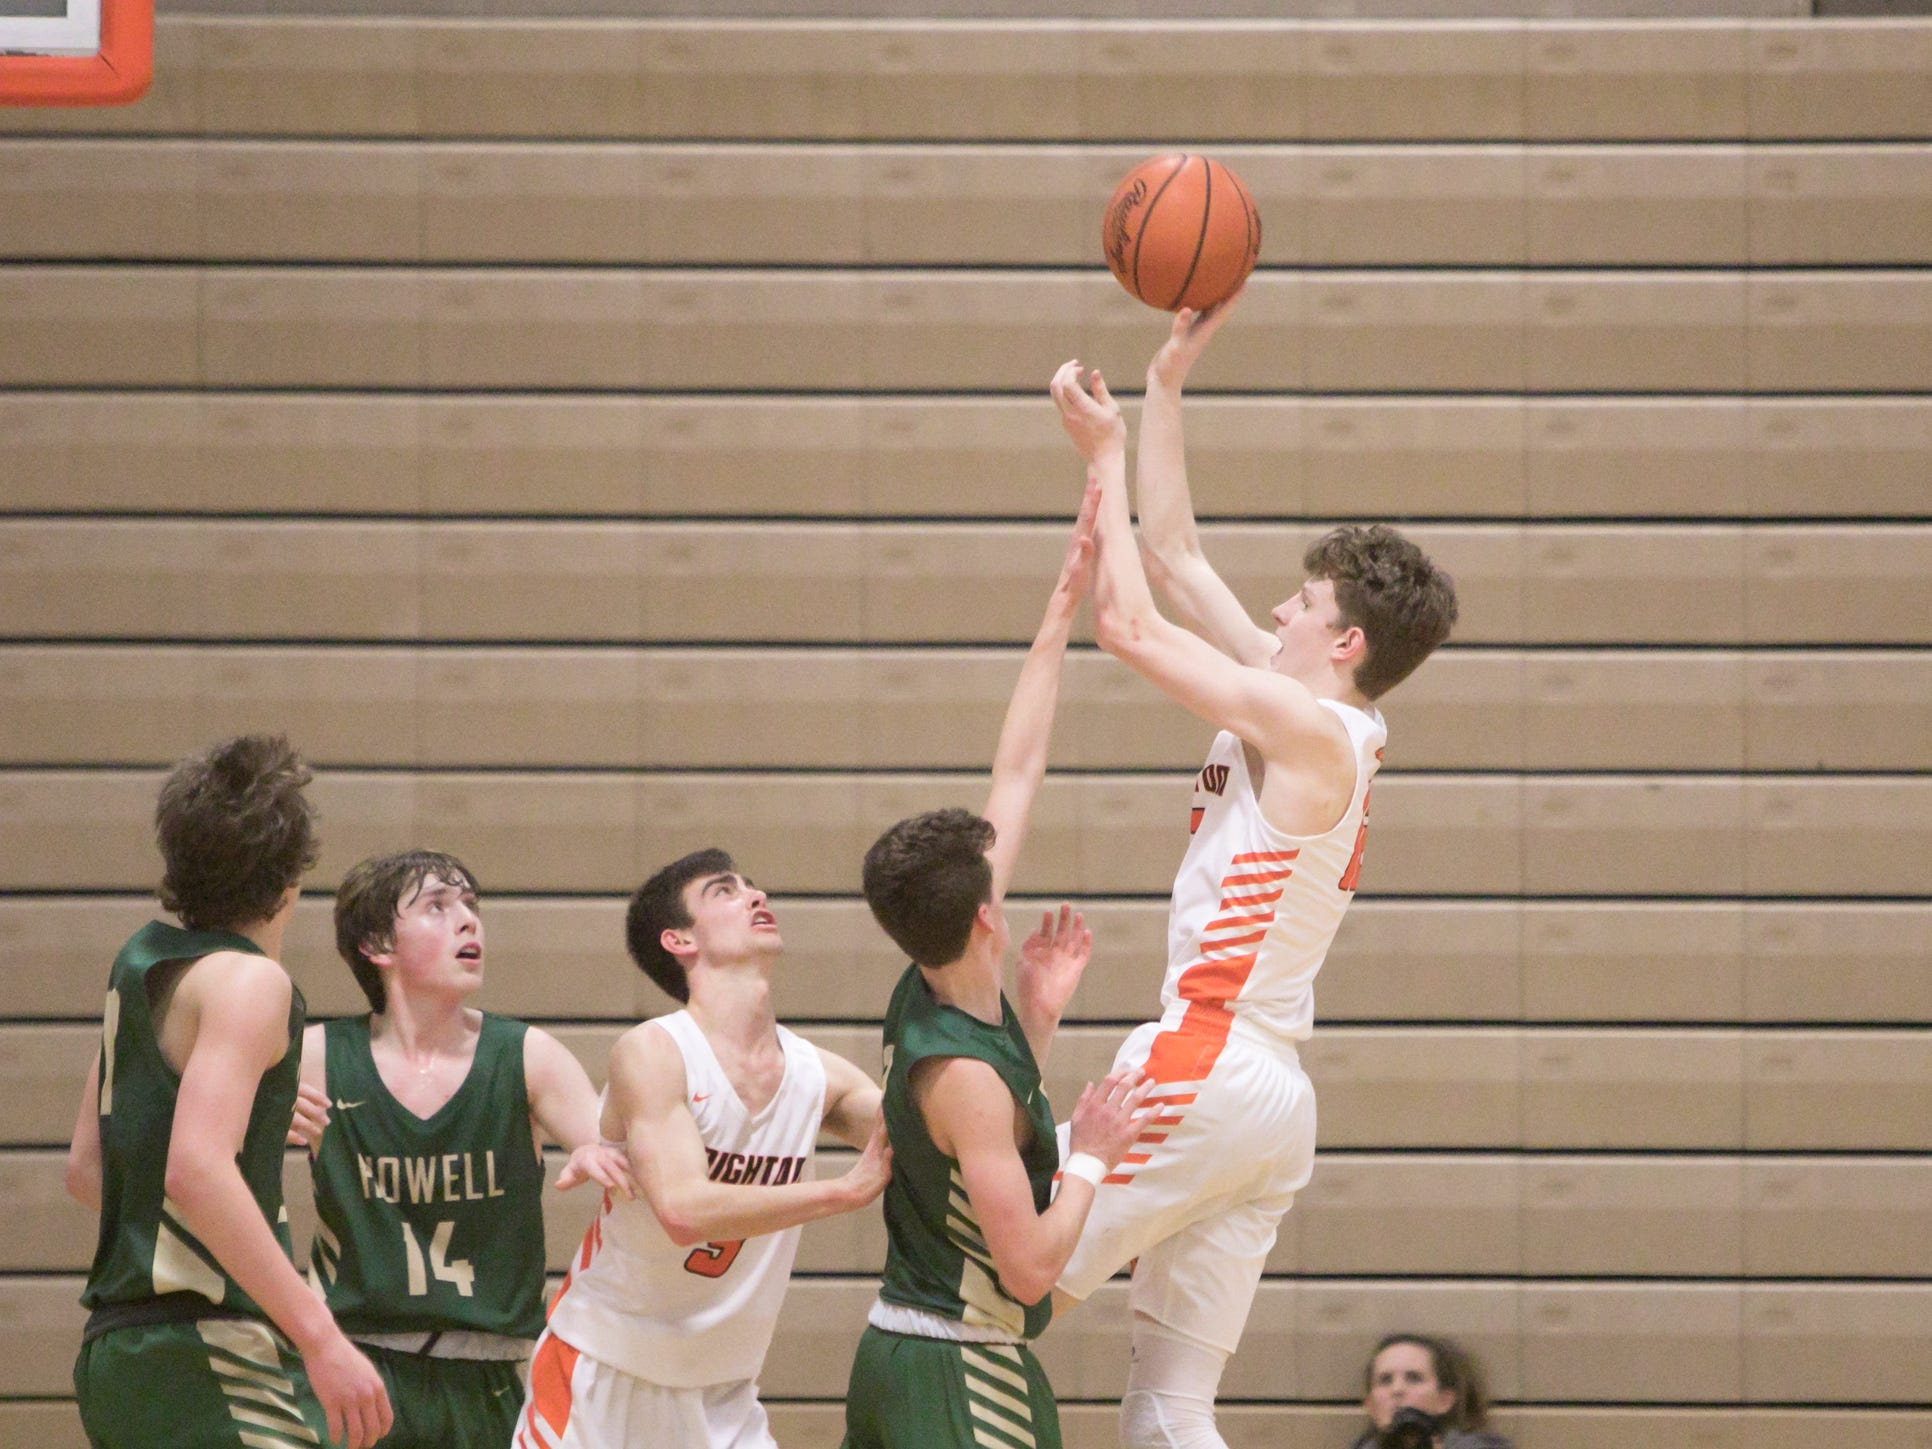 Brighton's Jacob Edwards is fouled during overtime in the home game against Howell Tuesday, Jan. 8, 2019.